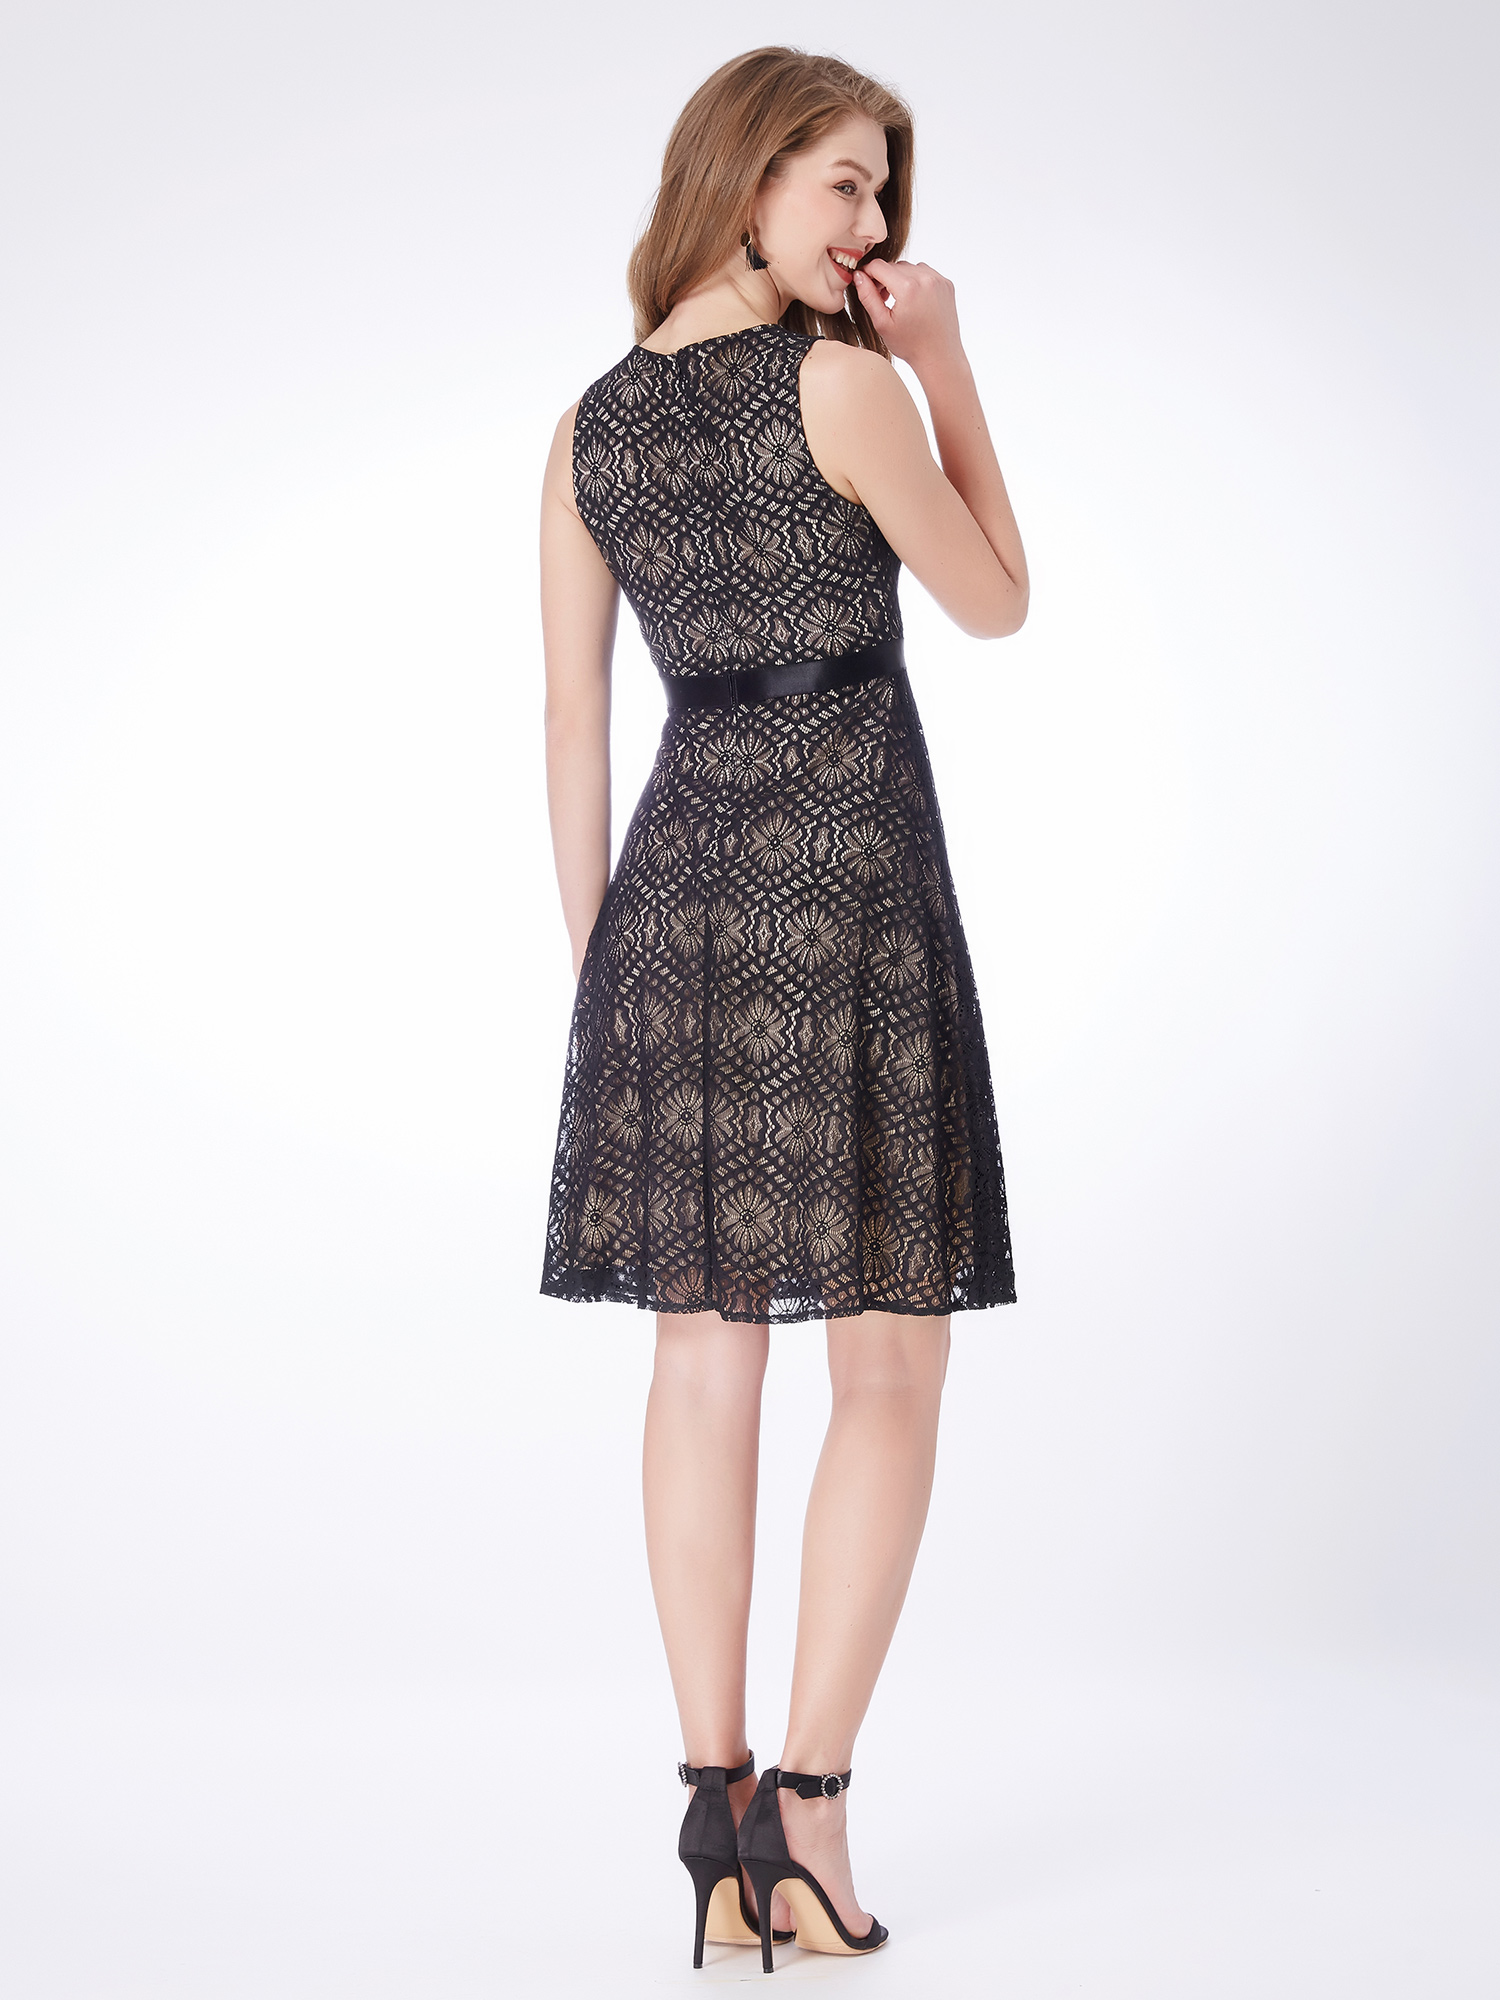 Alisa-Pan-Short-Sexy-Black-Sleeveless-Lace-Casual-Dresses-Cocktail-Skirts-04043